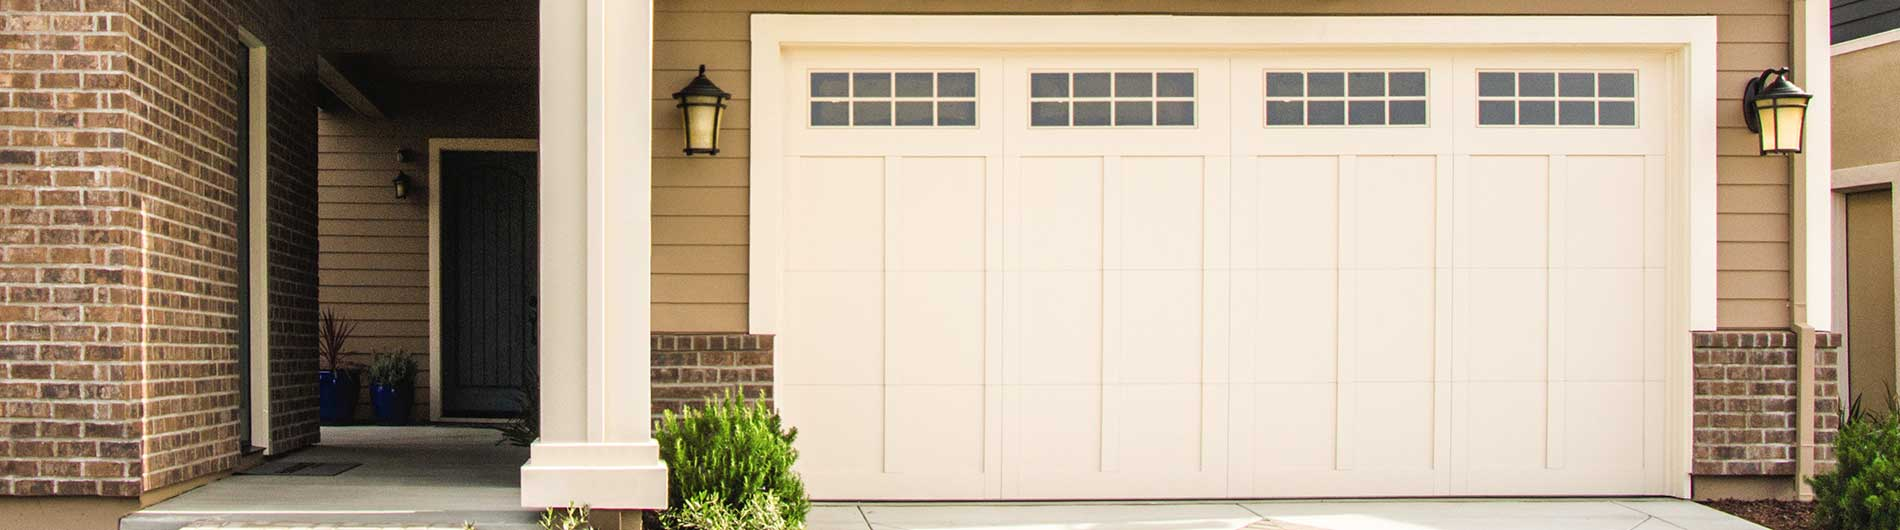 Wayne dalton garage door replacement panels floors Wayne dalton garage doors